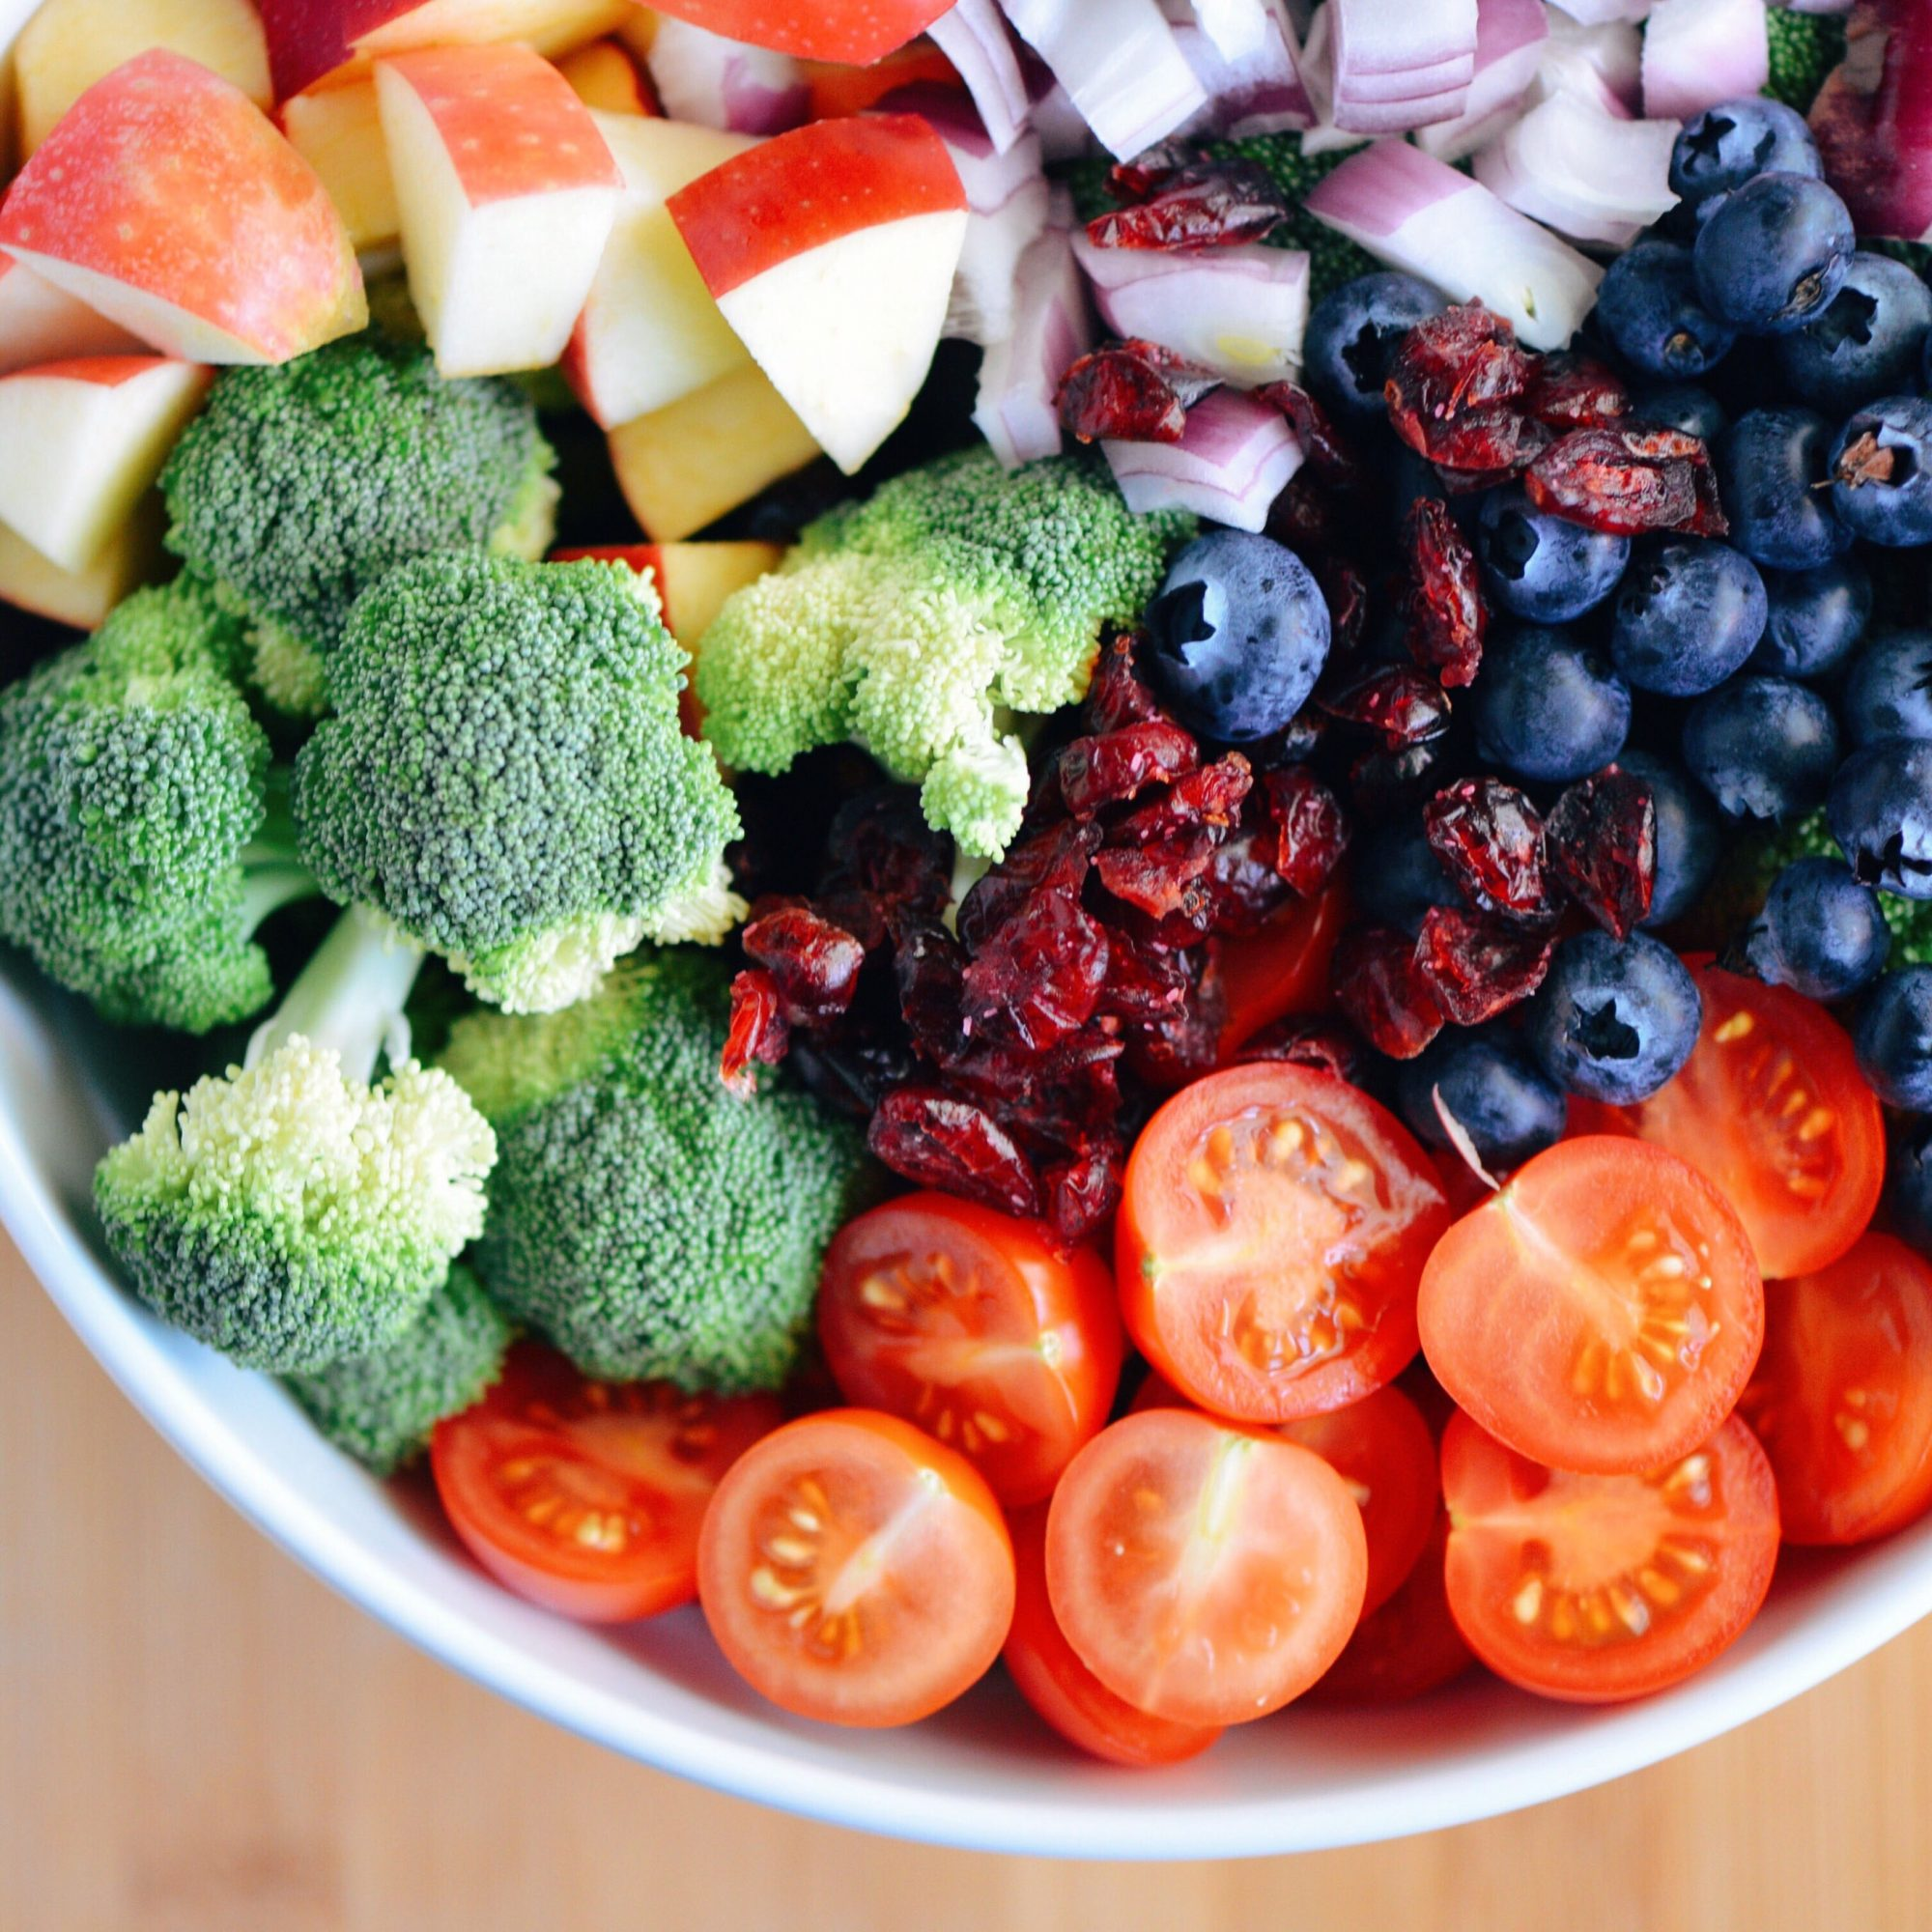 Bowl_Of_Fruits_And_Vegetables